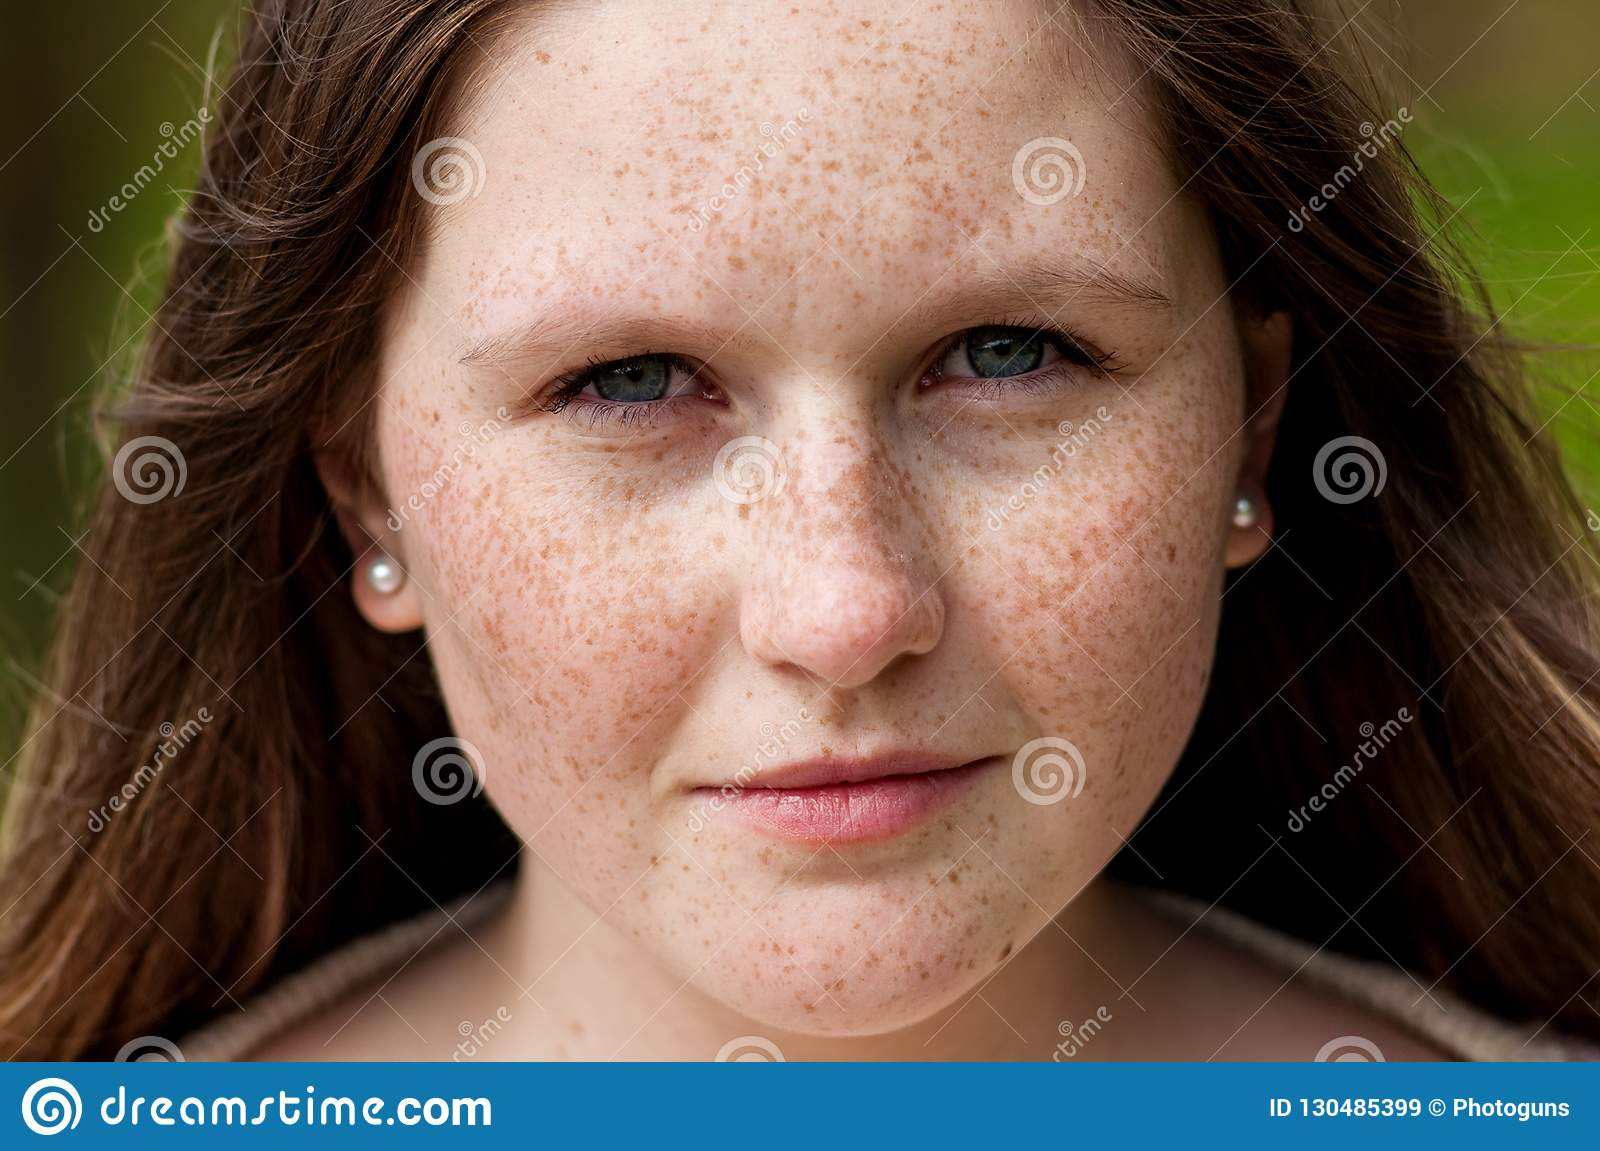 Consider, that beautiful redhead girls with freckles interesting